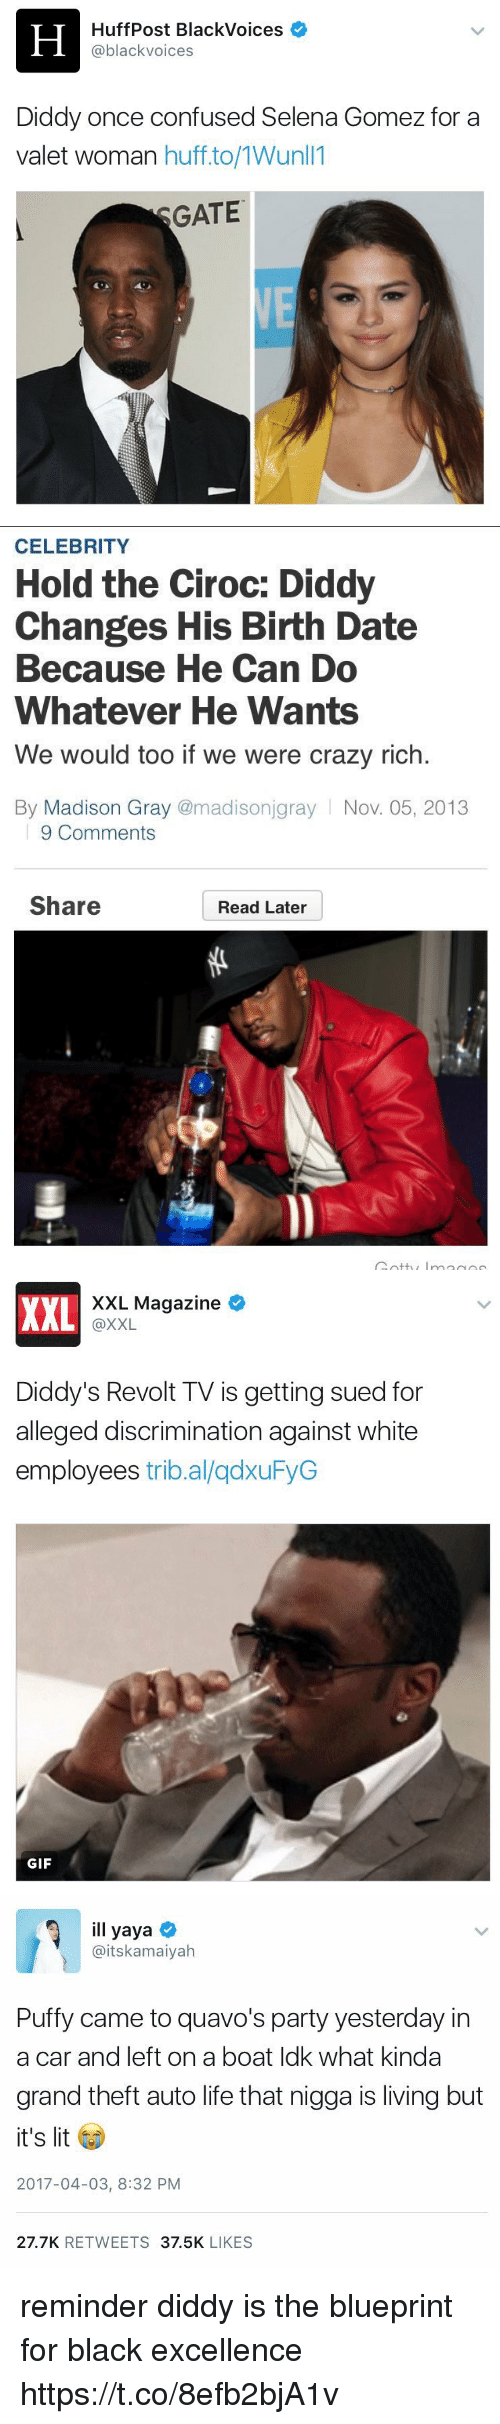 Blackpeopletwitter, Confused, and Crazy: H HuffPost BlackVoices  @black voices  Diddy once confused Selena Gomez for a  valet woman huff to/1Wunll1  GATE   CELEBRITY  Hold the Ciroc: Diddy  Changes His Birth Date  Because He Can Do  Whatever He Wants  We would too if we were crazy rich.  By Madison Gray  (@madisonjgray Nov. 05, 2013  9 Comments  Share  Read Later   XXL Magazine  XXL  @XXL  Diddy's Revolt TV is getting sued for  alleged discrimination against white  employees  tribal/qdxuFyG  GIF   ill yaya  aitskamaiyah  Puffy came to quavo's party yesterday in  a car and left on a boat ldk what kinda  grand theft auto life that nigga is living but  it's lit  2017-04-03, 8:32 PM  27.7K  RETWEETS  37.5K  LIKES reminder diddy is the blueprint for black excellence https://t.co/8efb2bjA1v